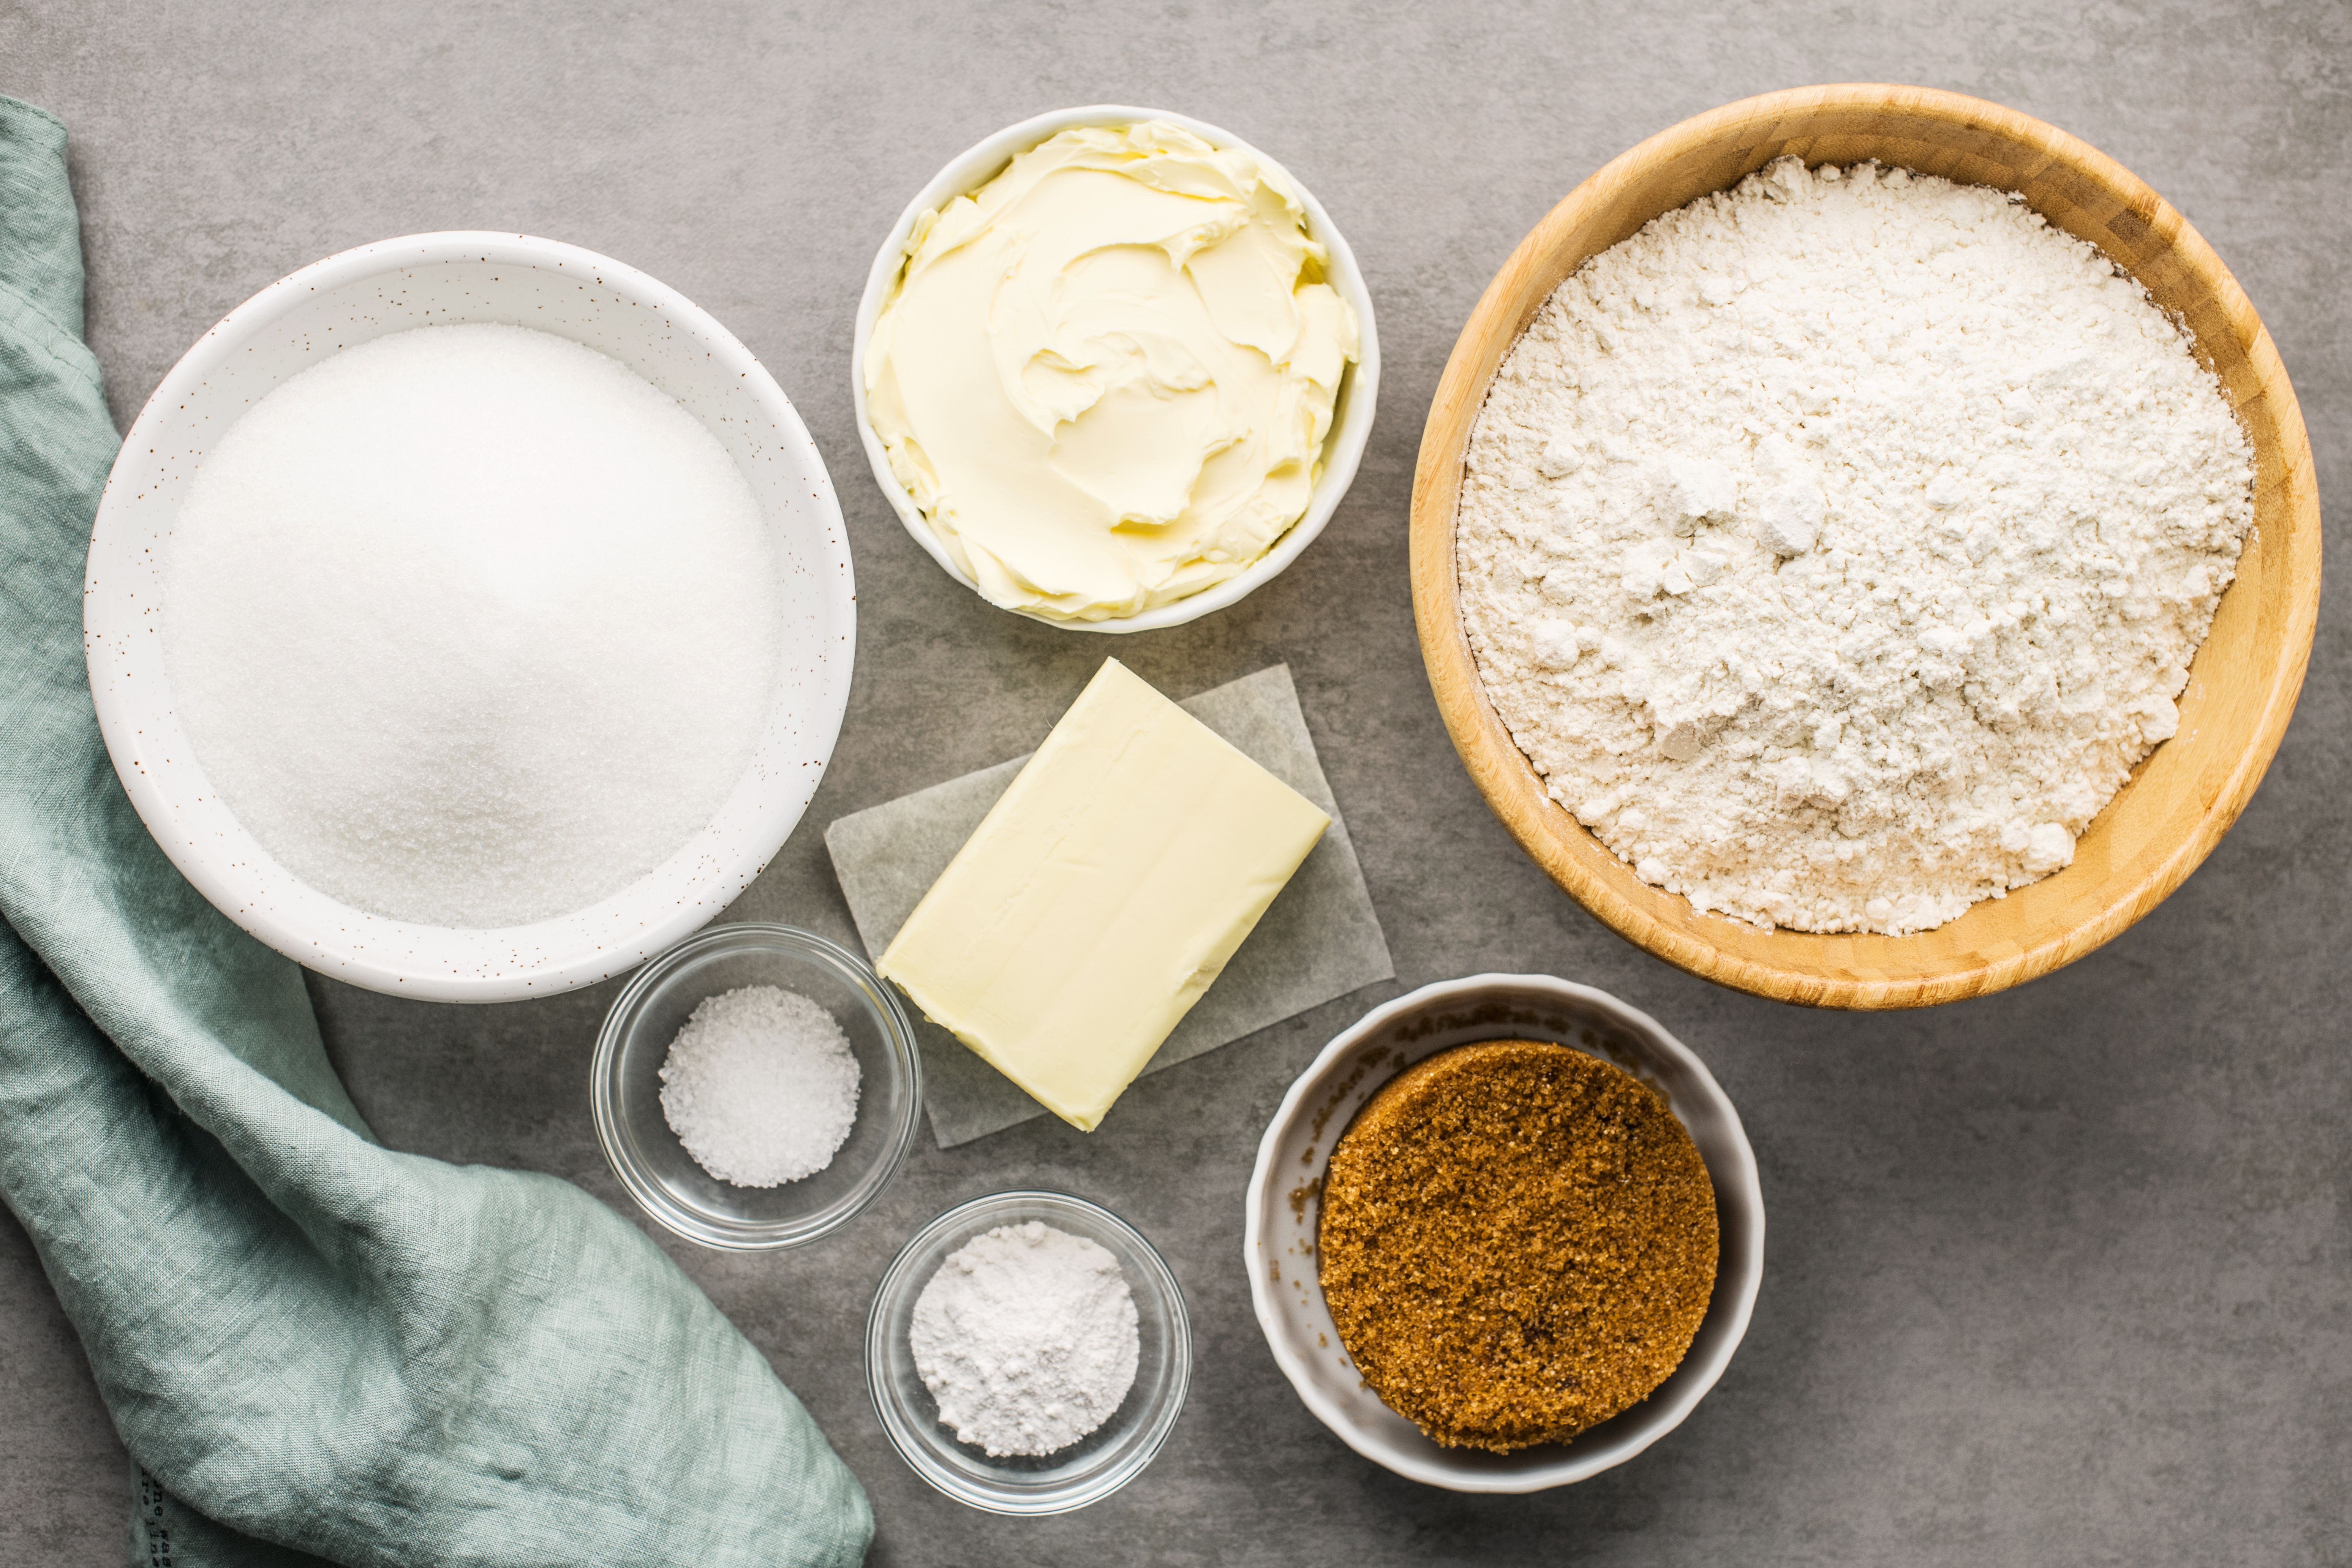 Ingredients for homemade cookie mix